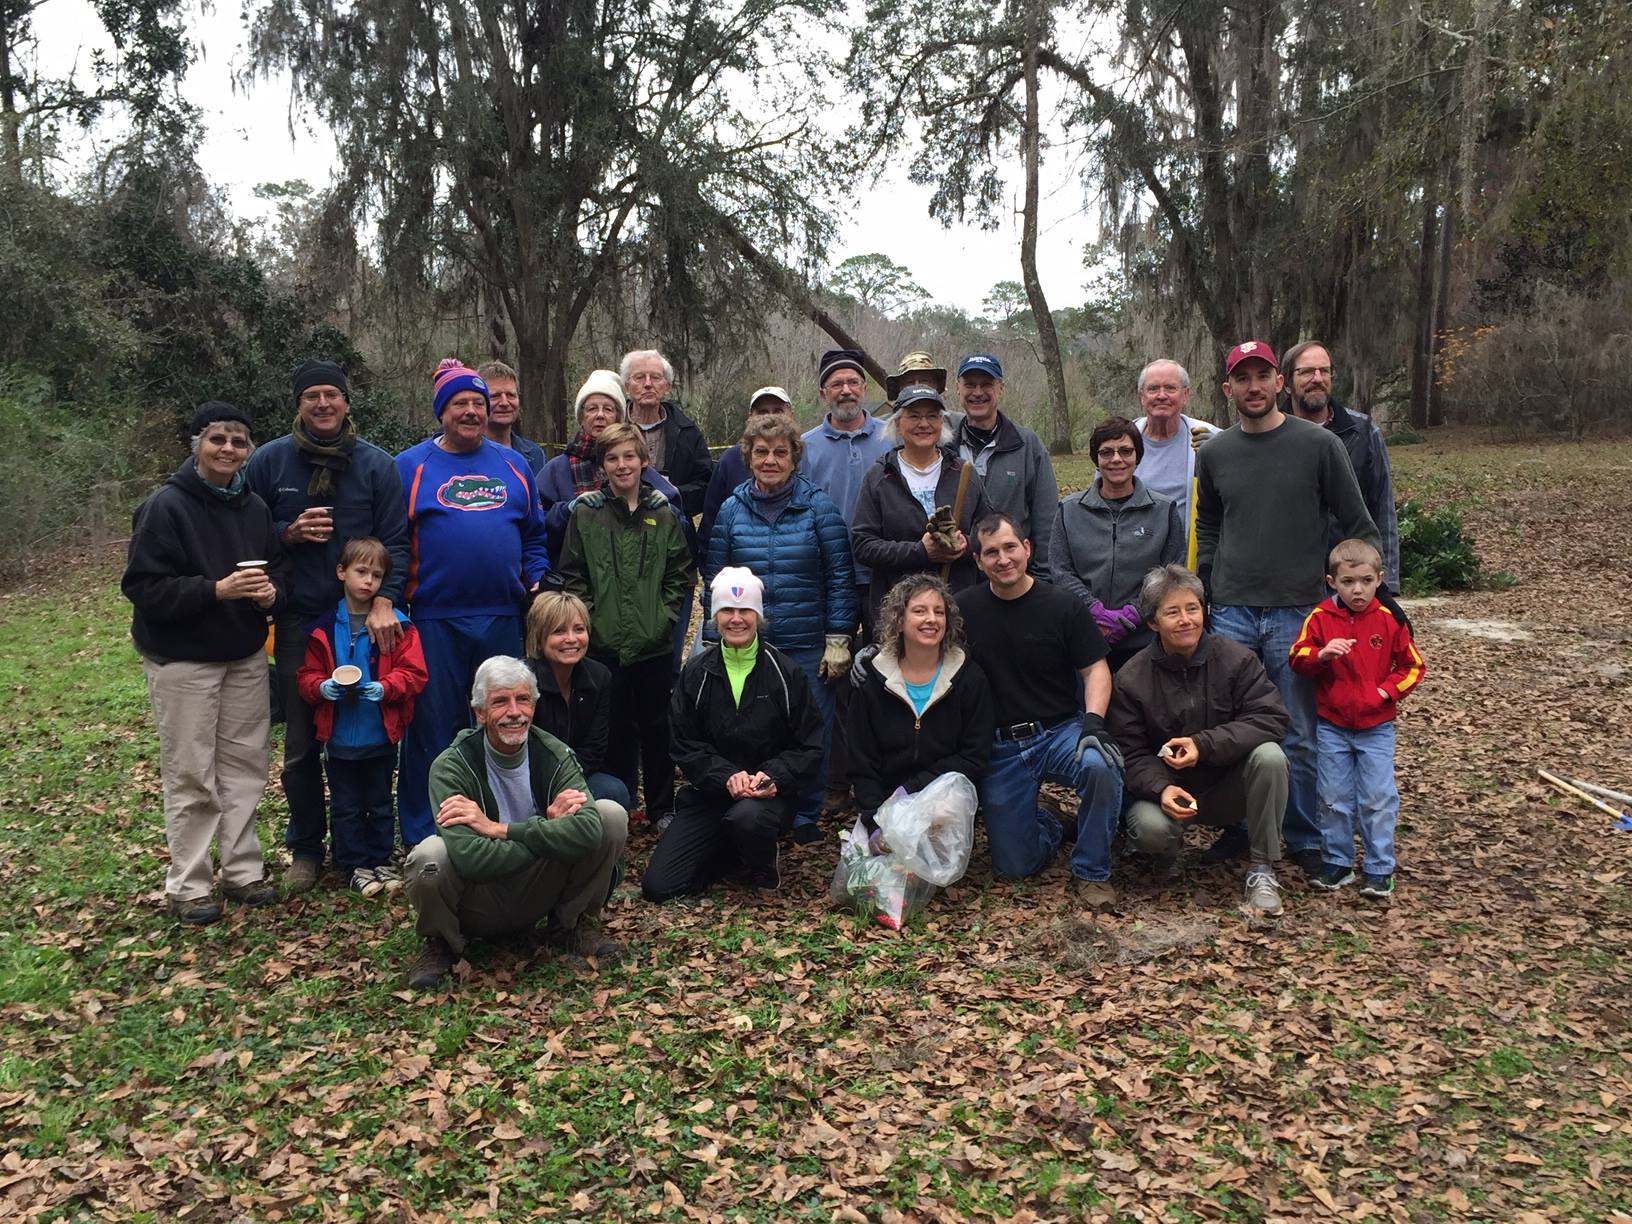 Thanks to everyone who came out for Arbor Day 2017